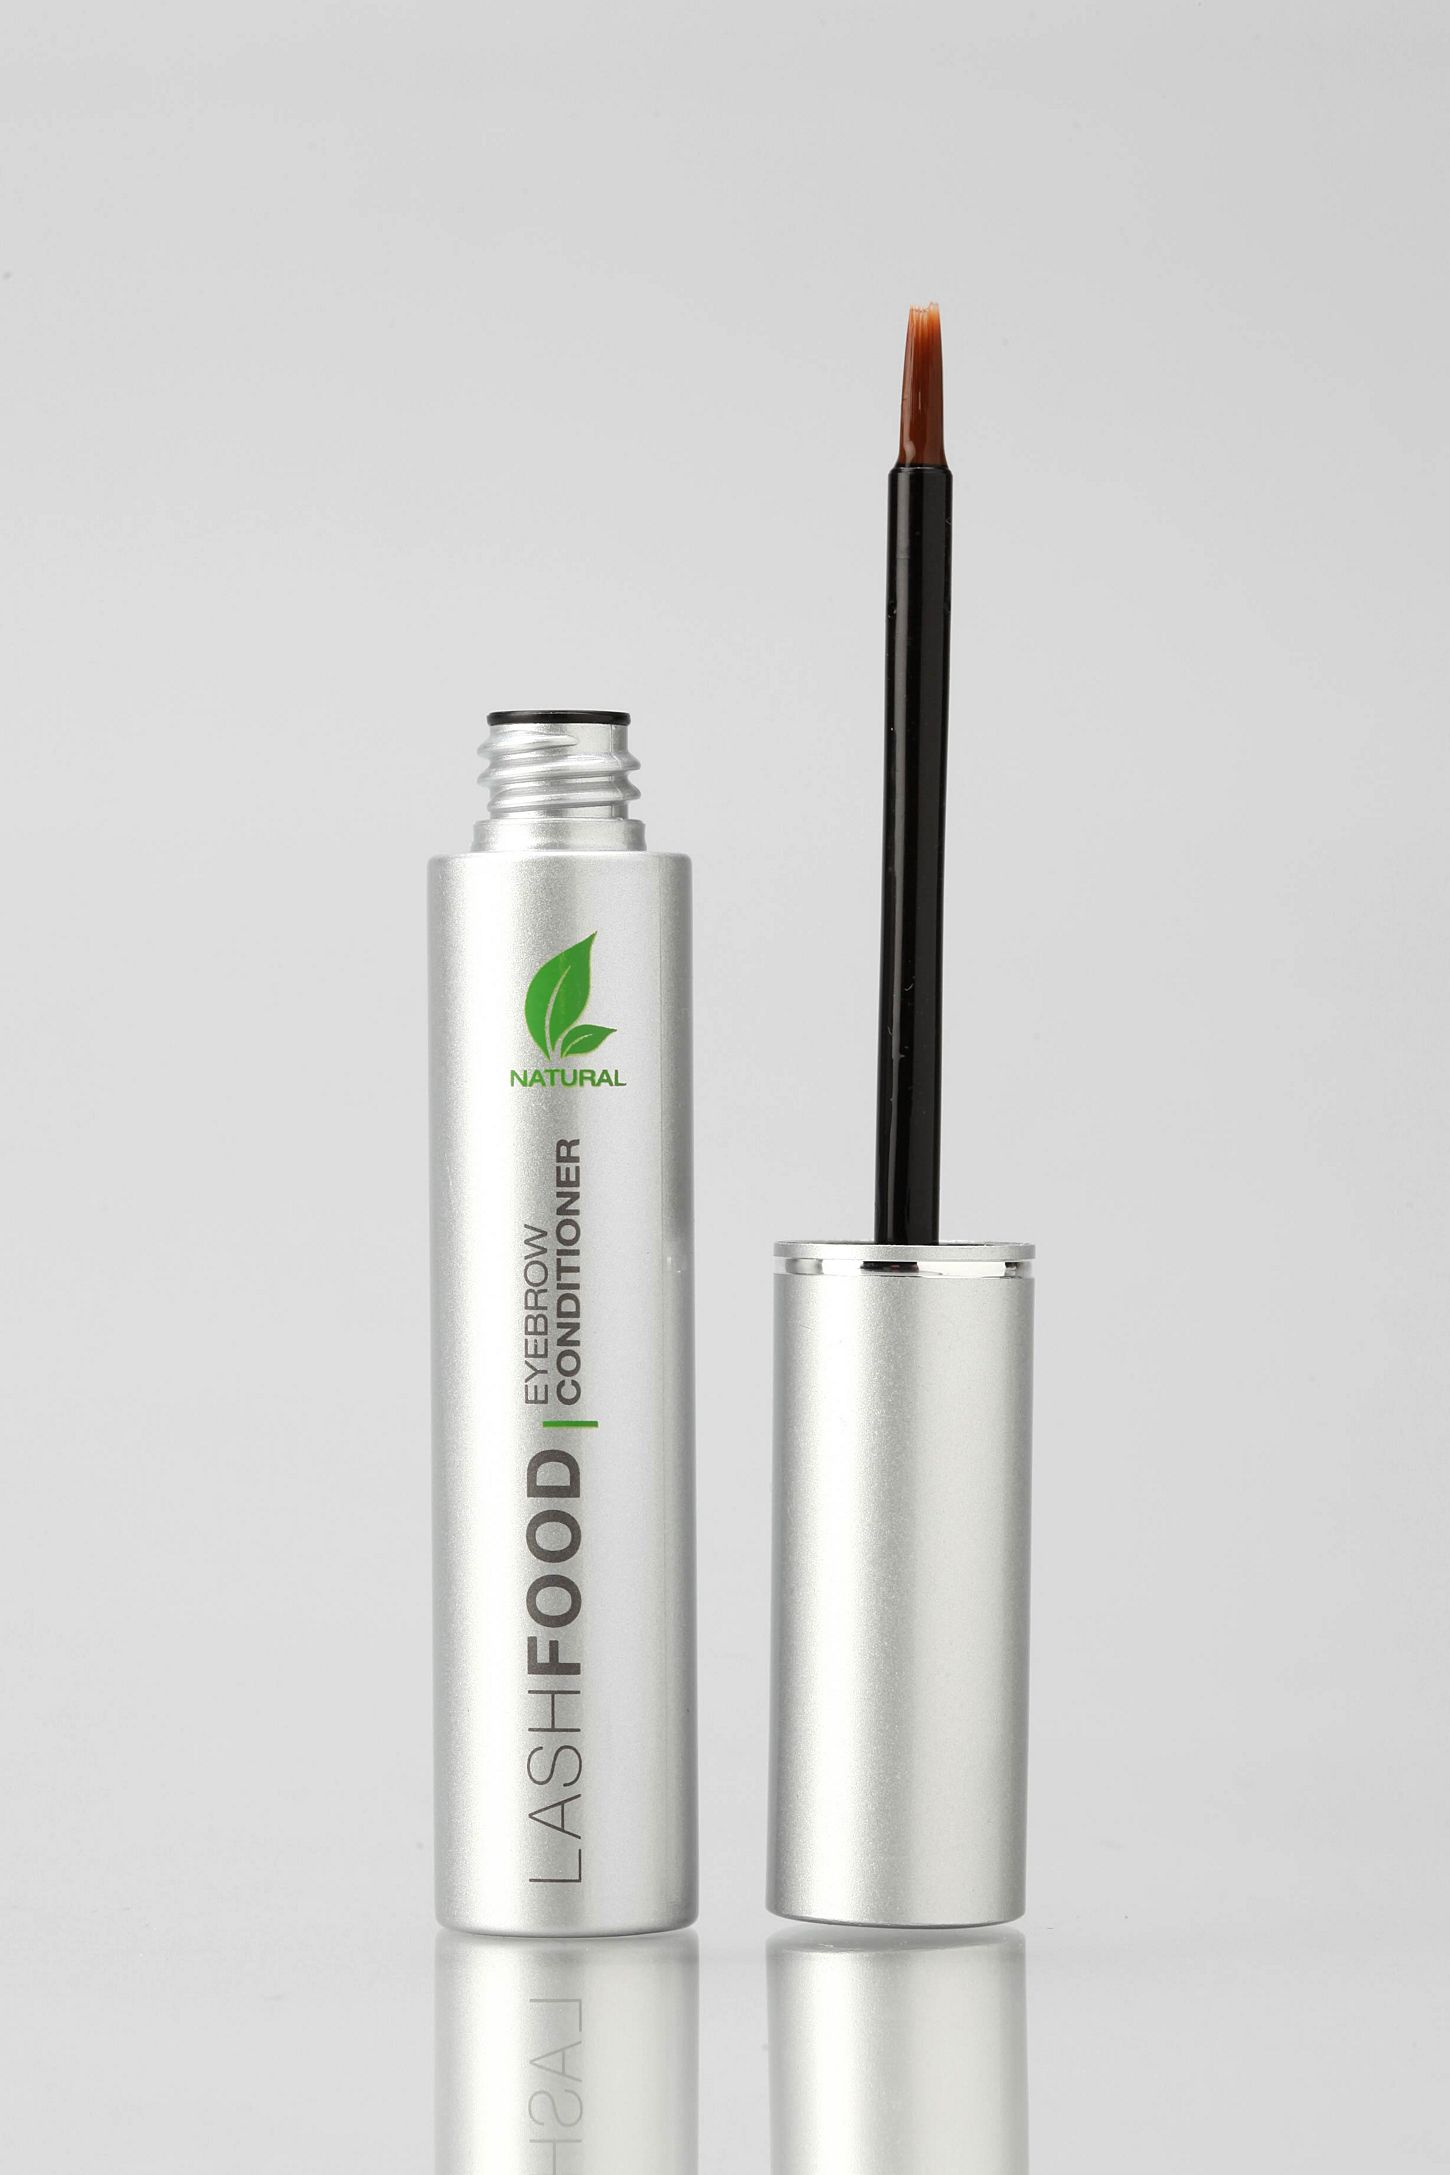 Lashfood For Brows Natural Eyebrow Conditioner Urban Outfitters